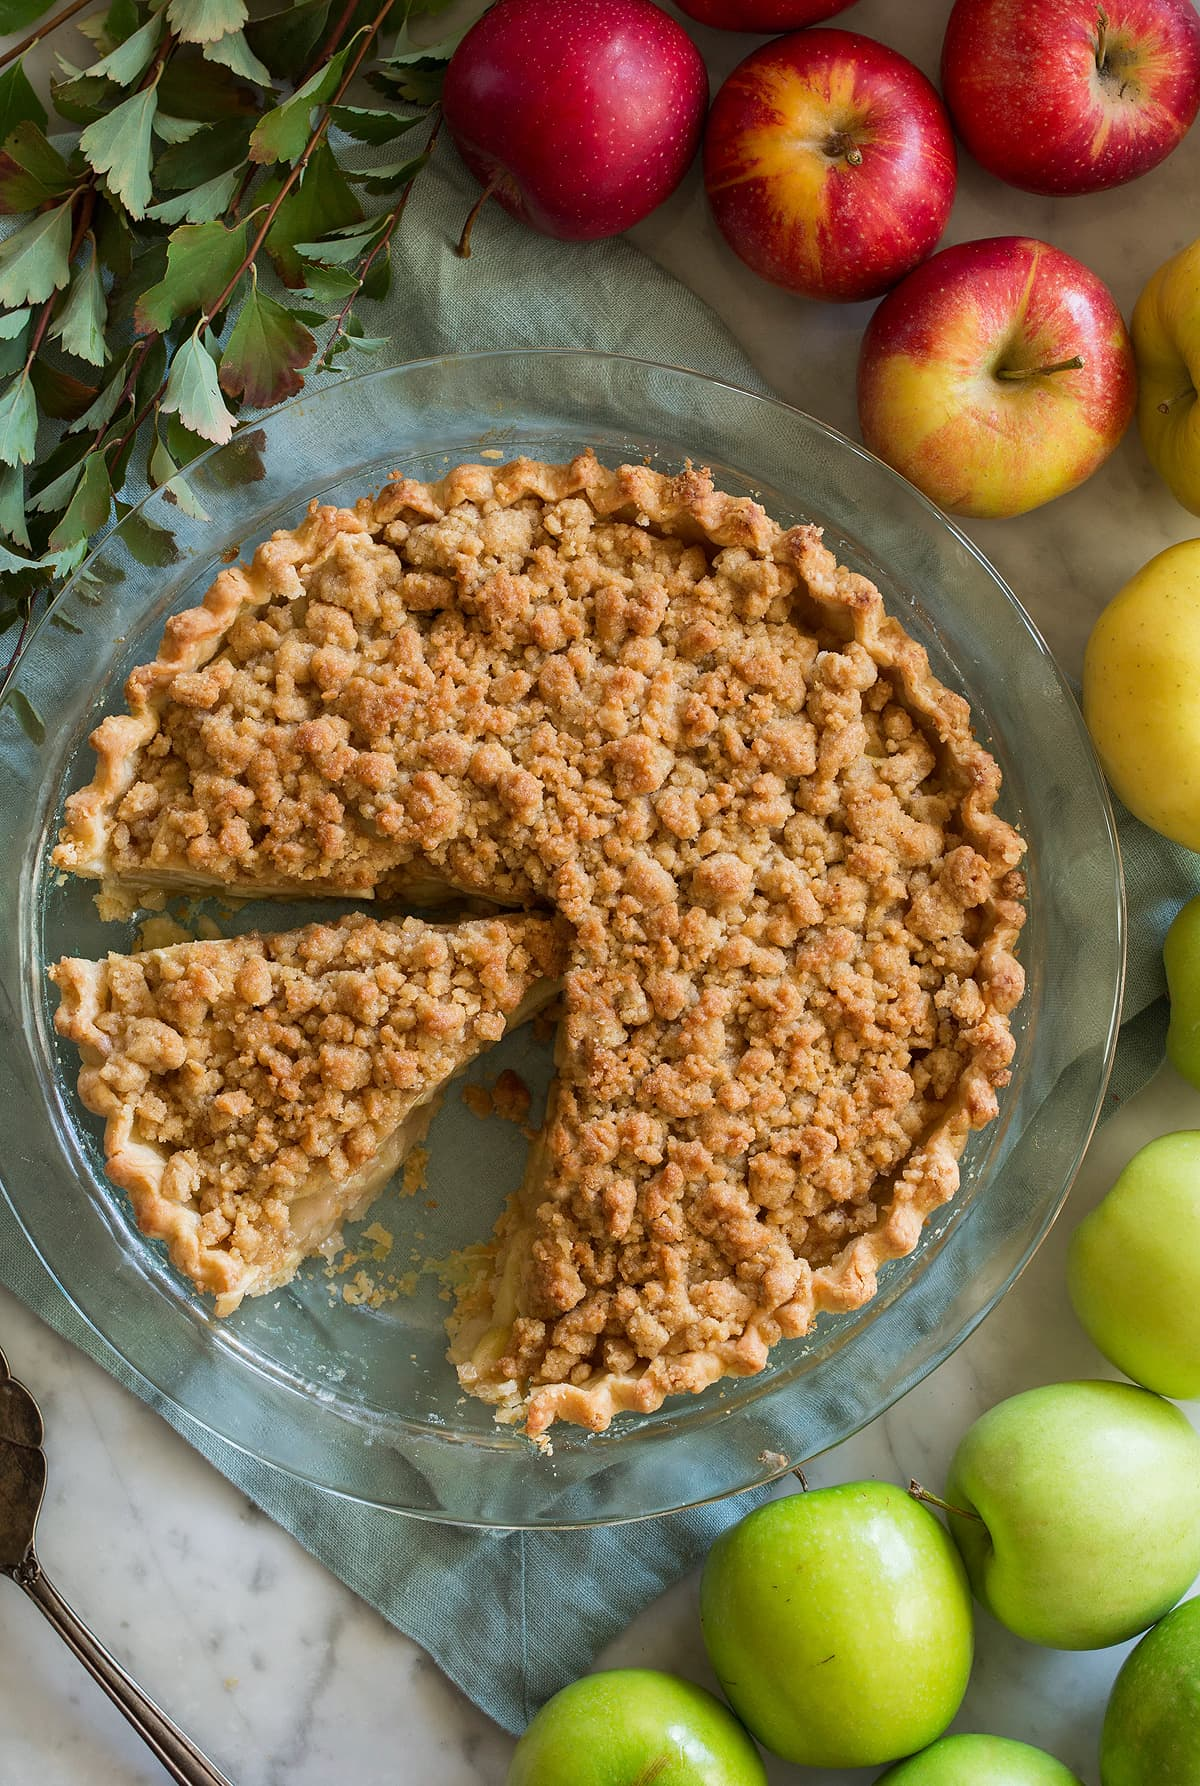 Overhead image of sliced Dutch apple pie with a colorful variety of apples around the pie.